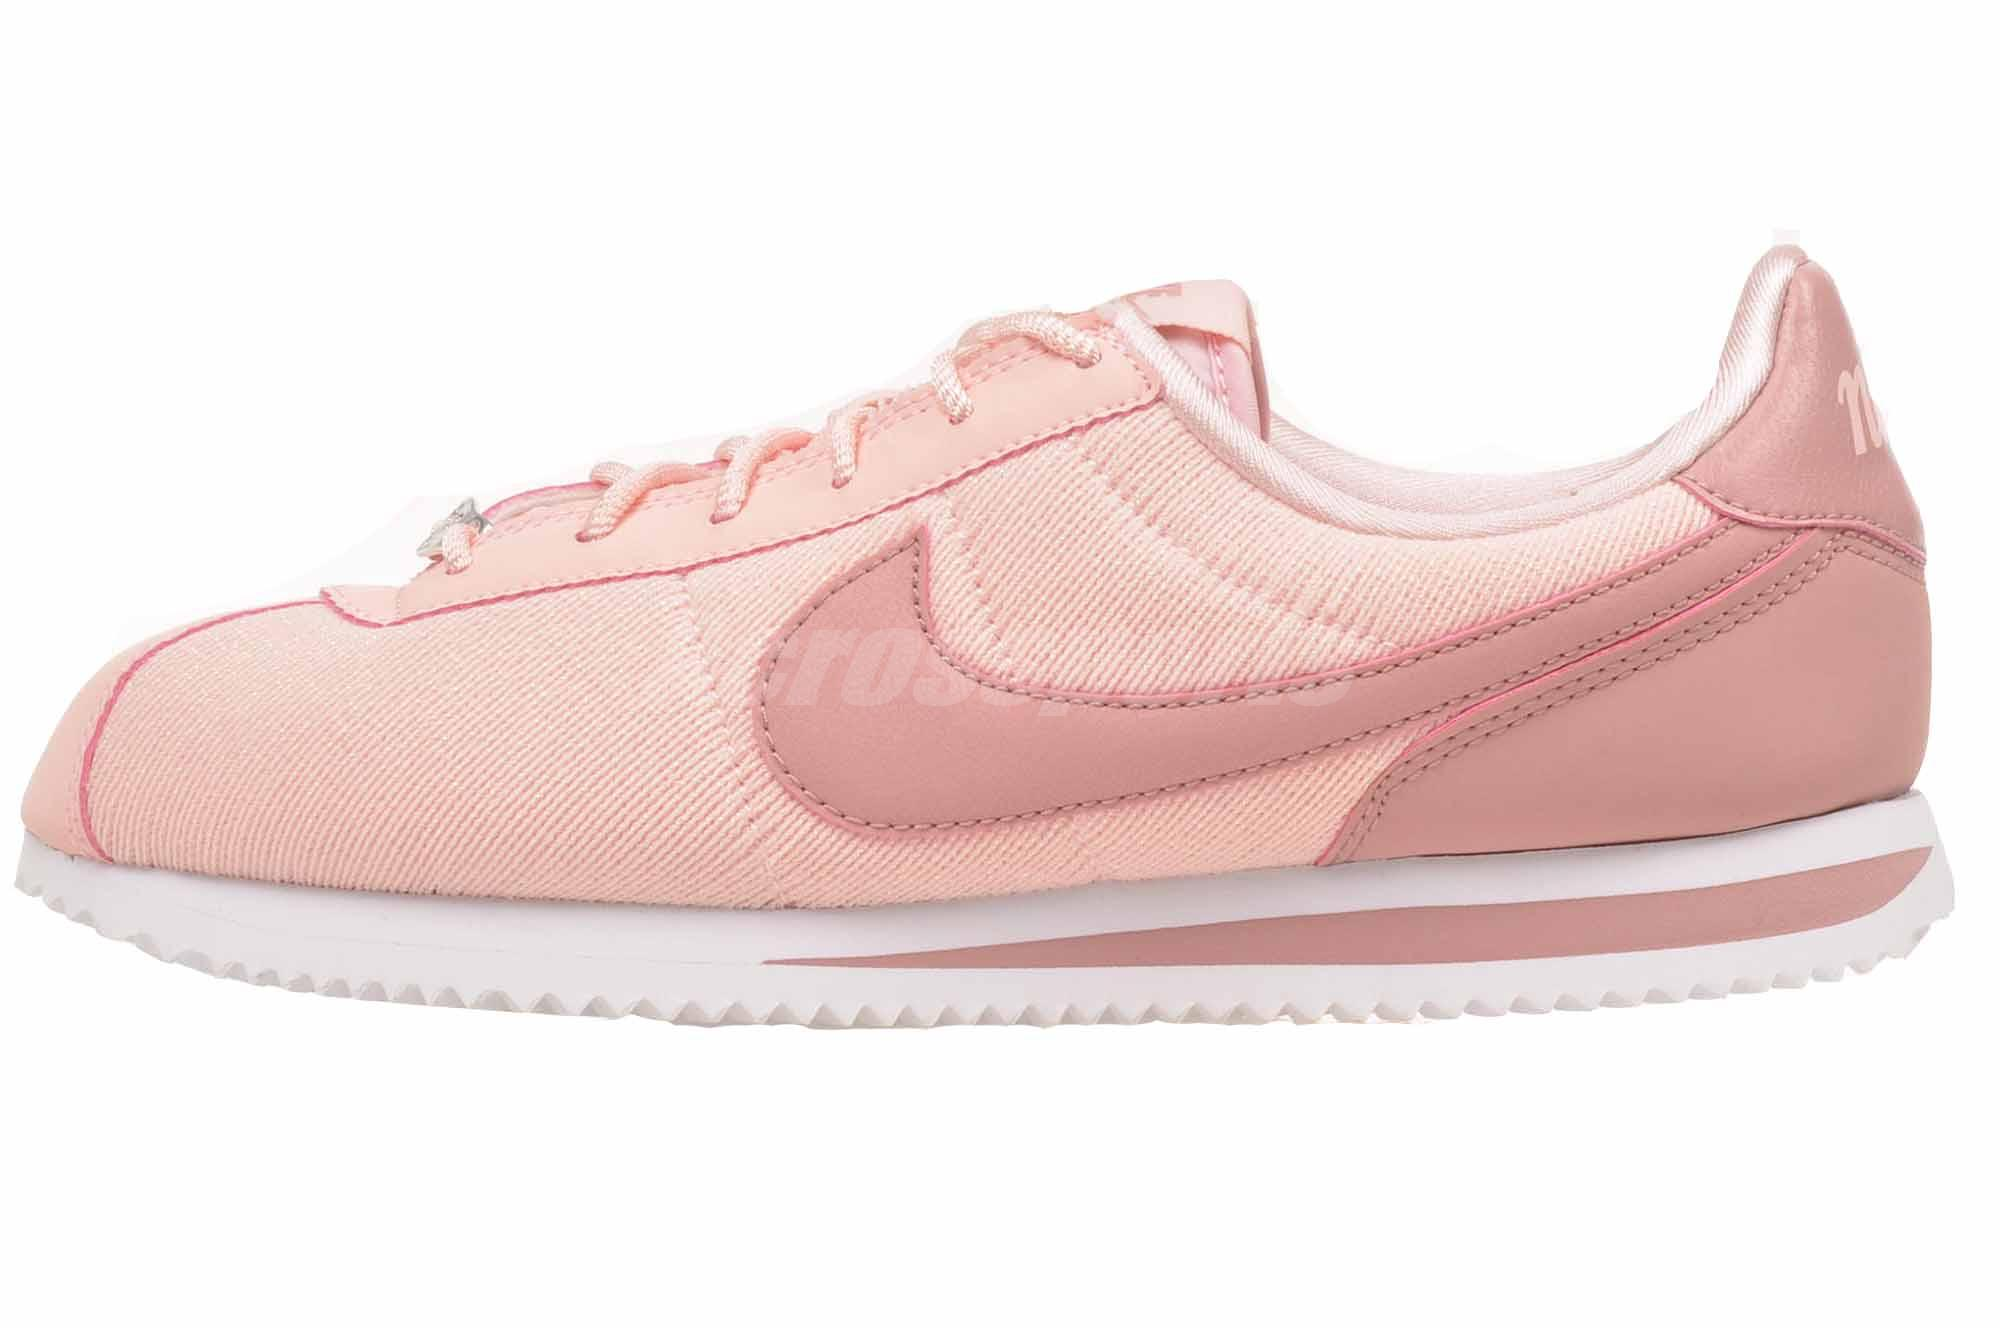 best service 0b296 2957f Details about Nike Cortez Basic TXT SE GS Casual Kids Youth Womens Shoes  Pink AA3498-600